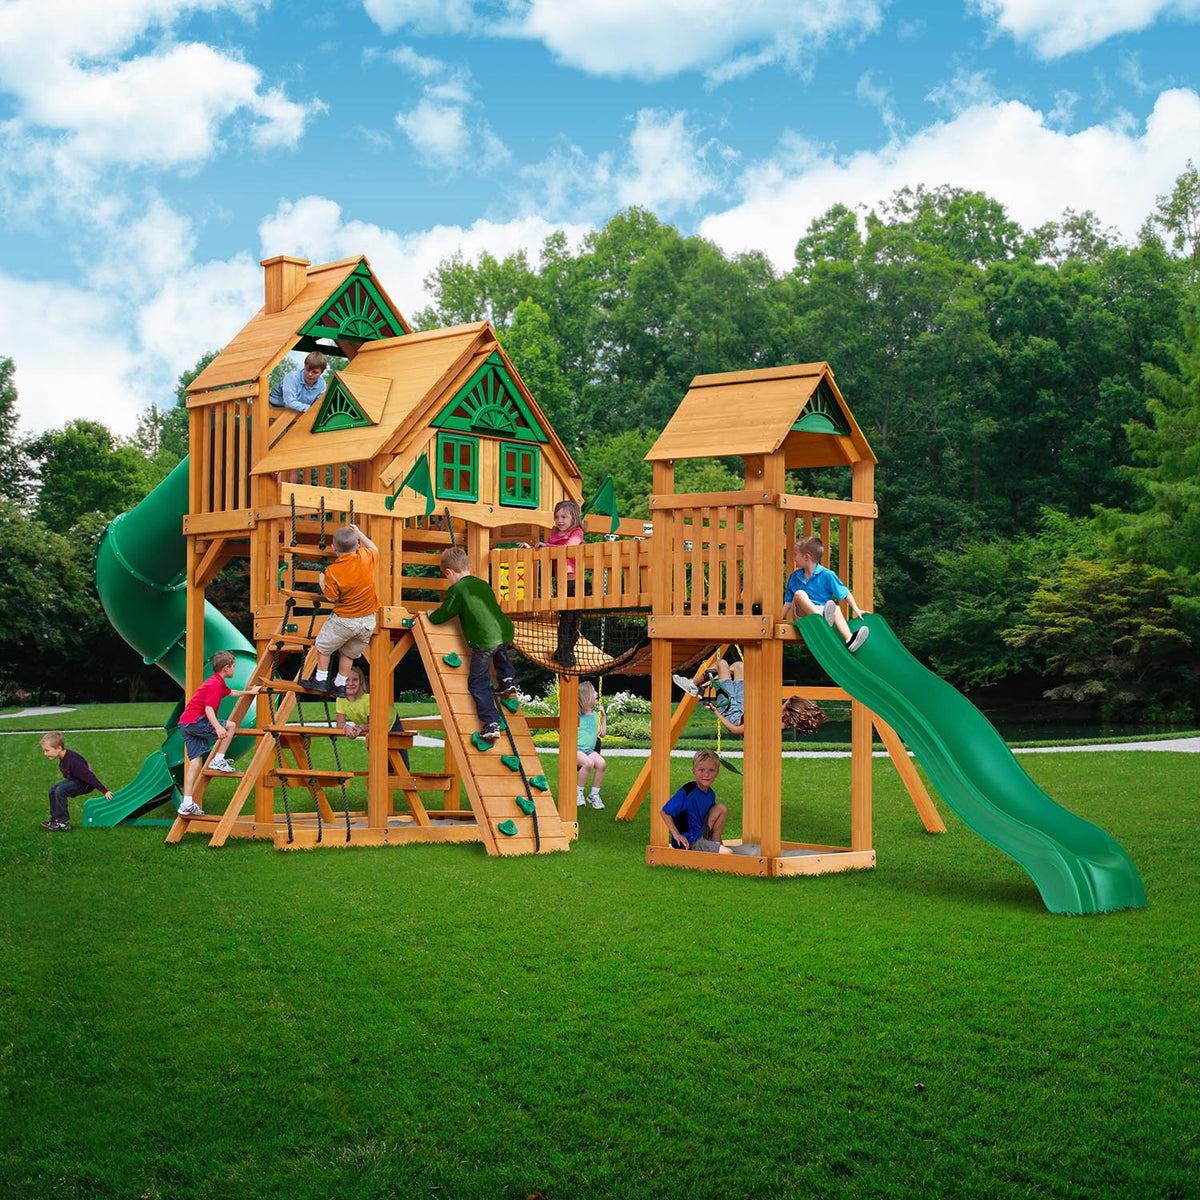 Gorilla-Playsets-Treasure-Trove-I-Treehouse-Wooden-Swingset